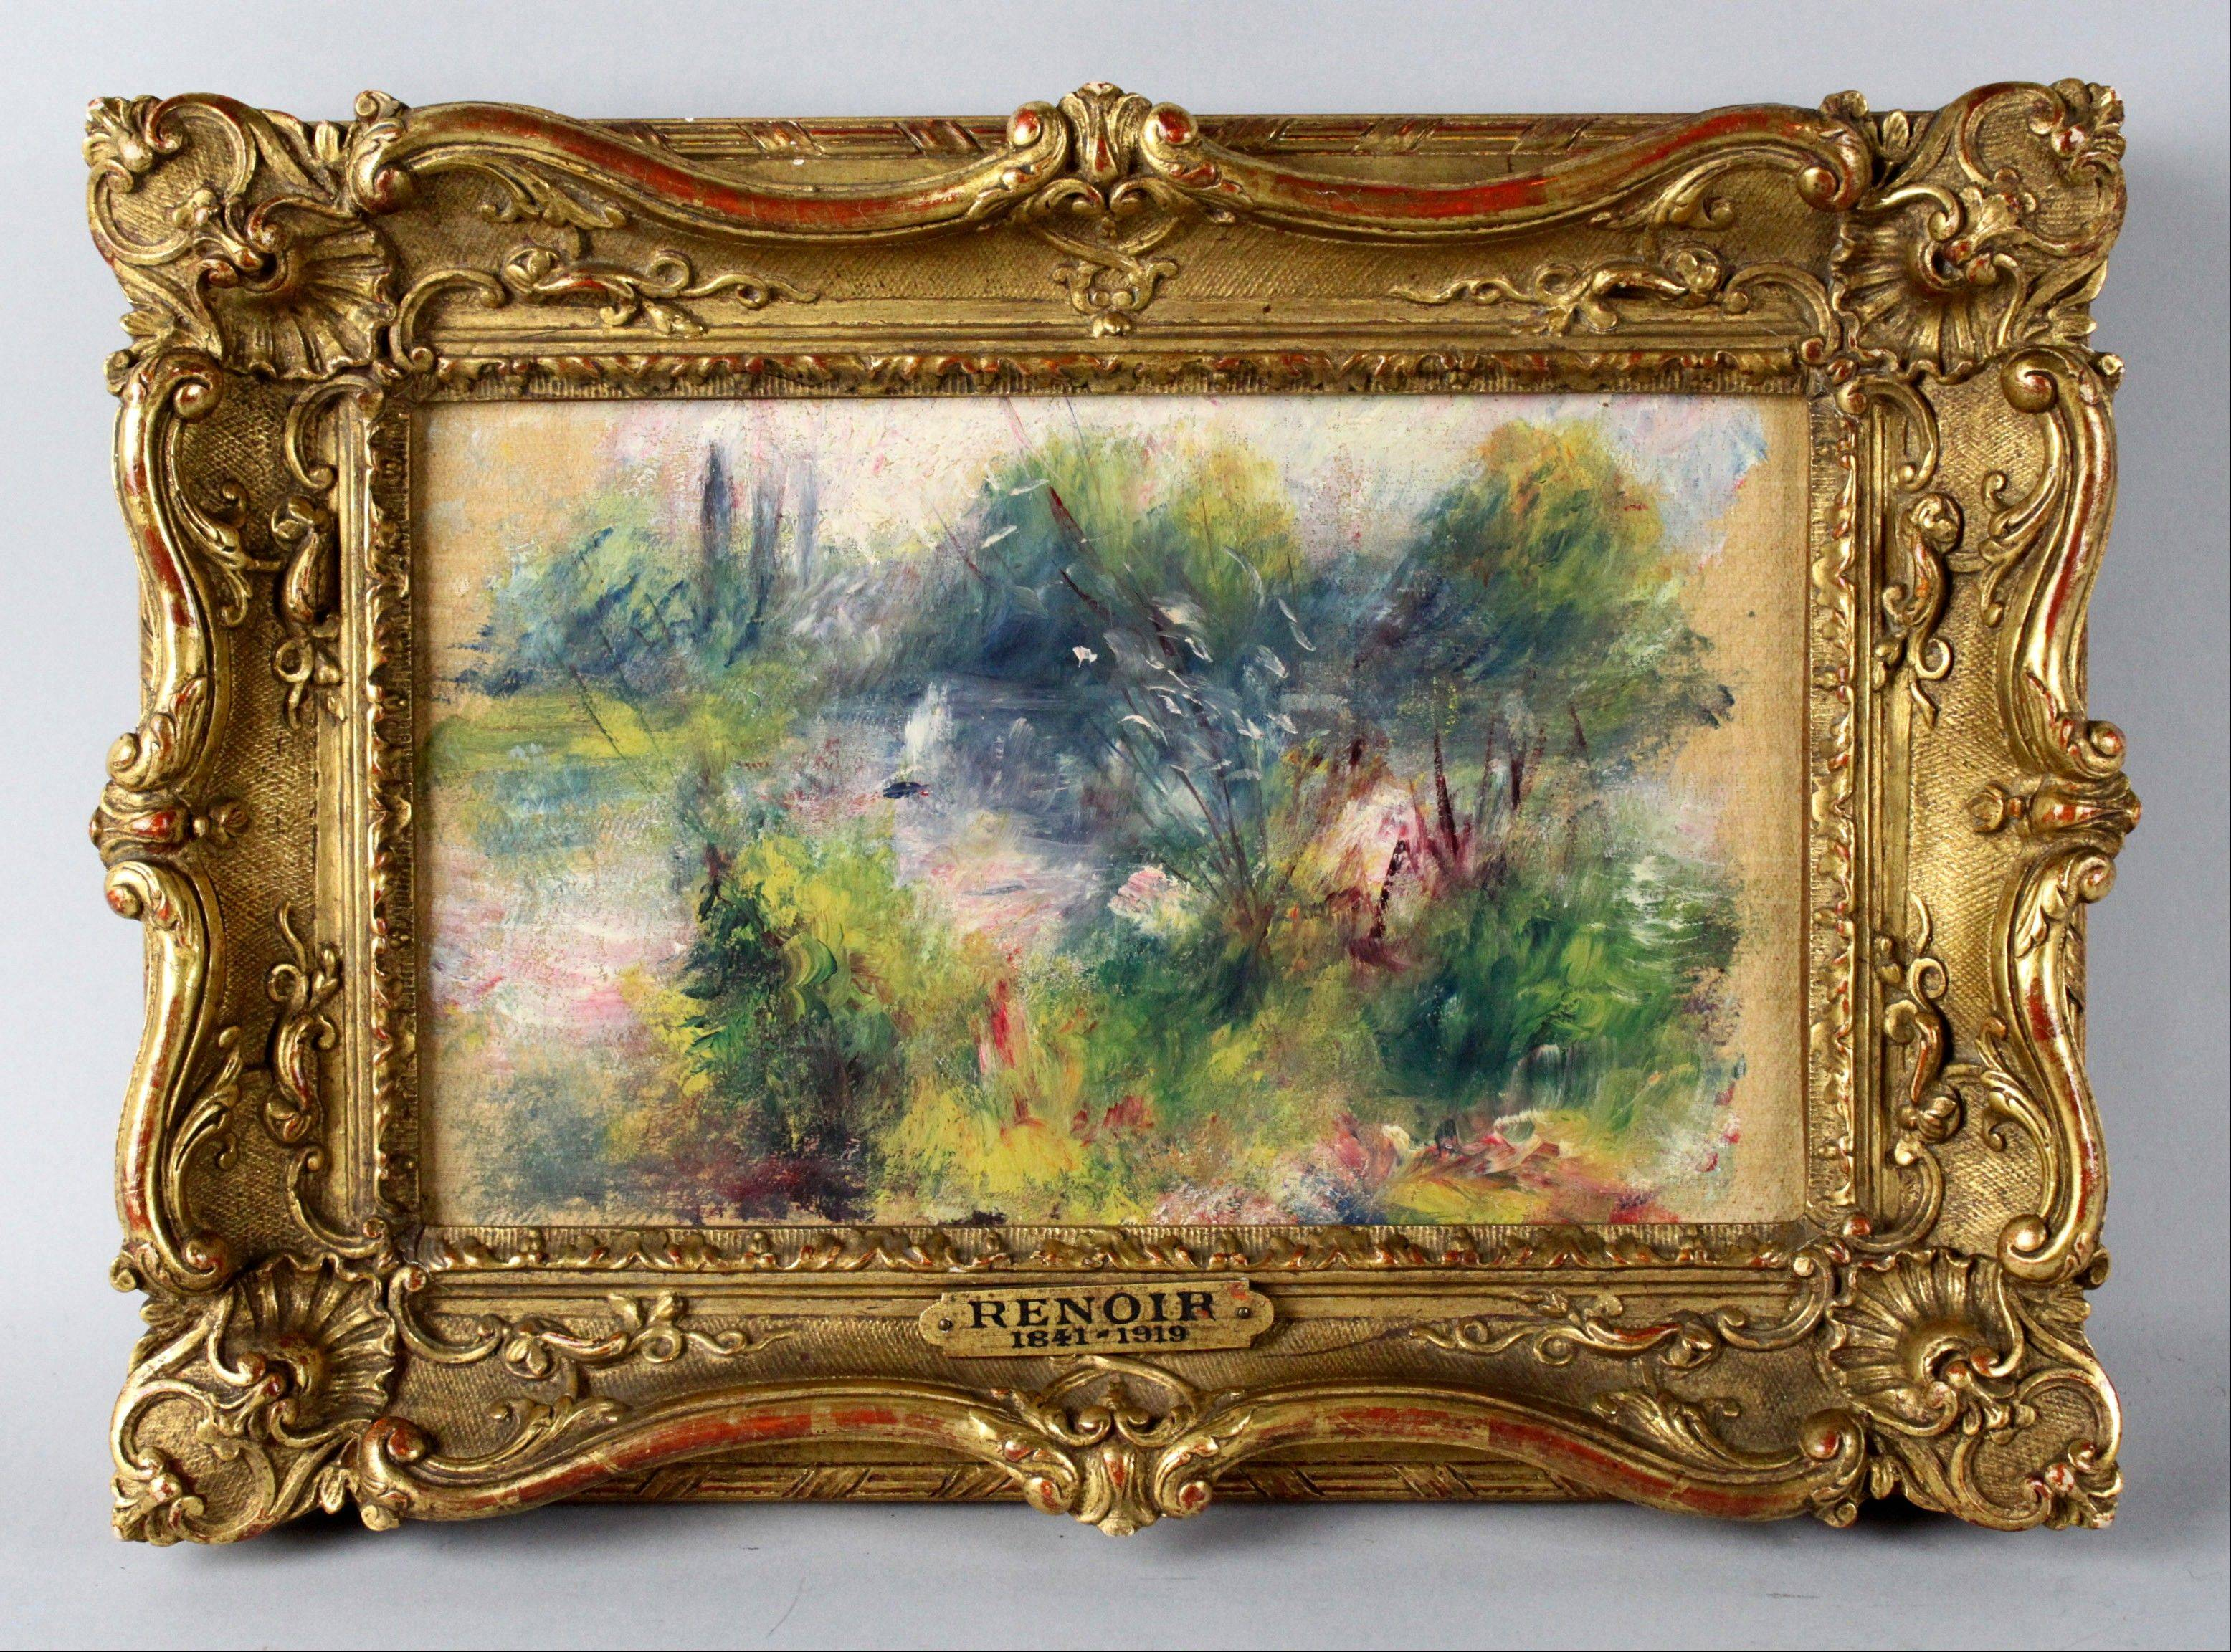 Original painting by French impressionist Pierre-Auguste Renoir.